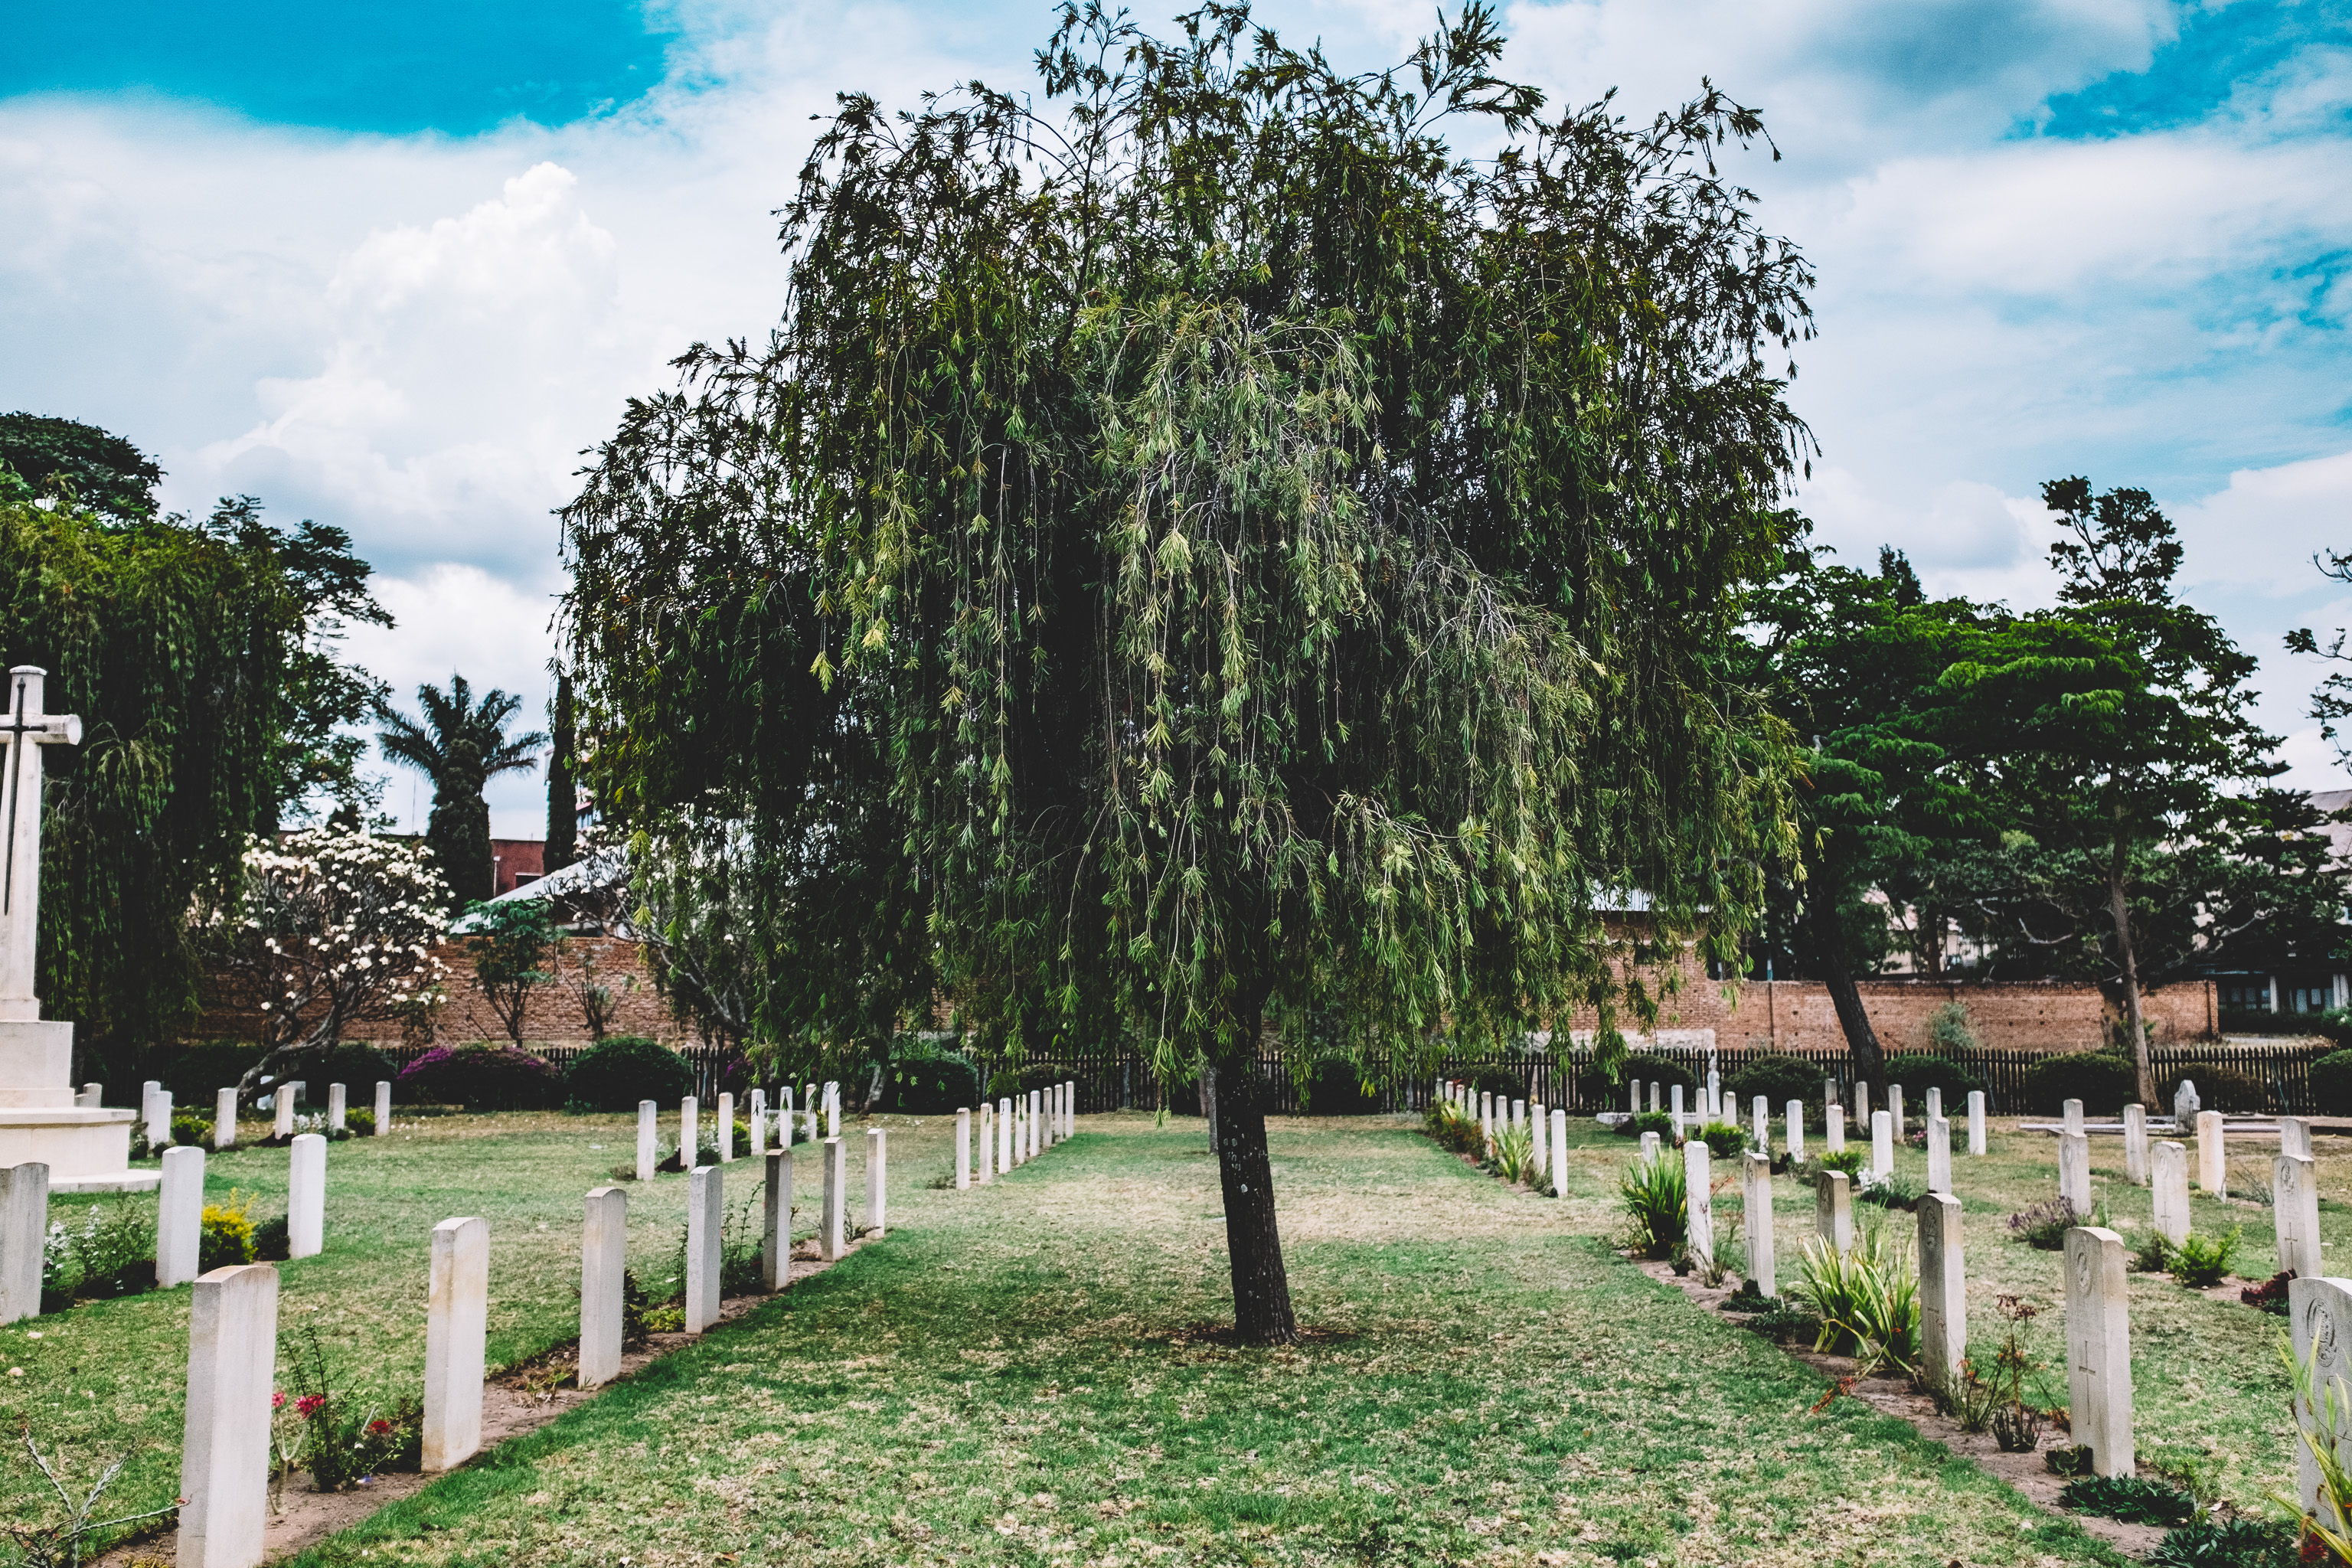 Tree in Graveyard